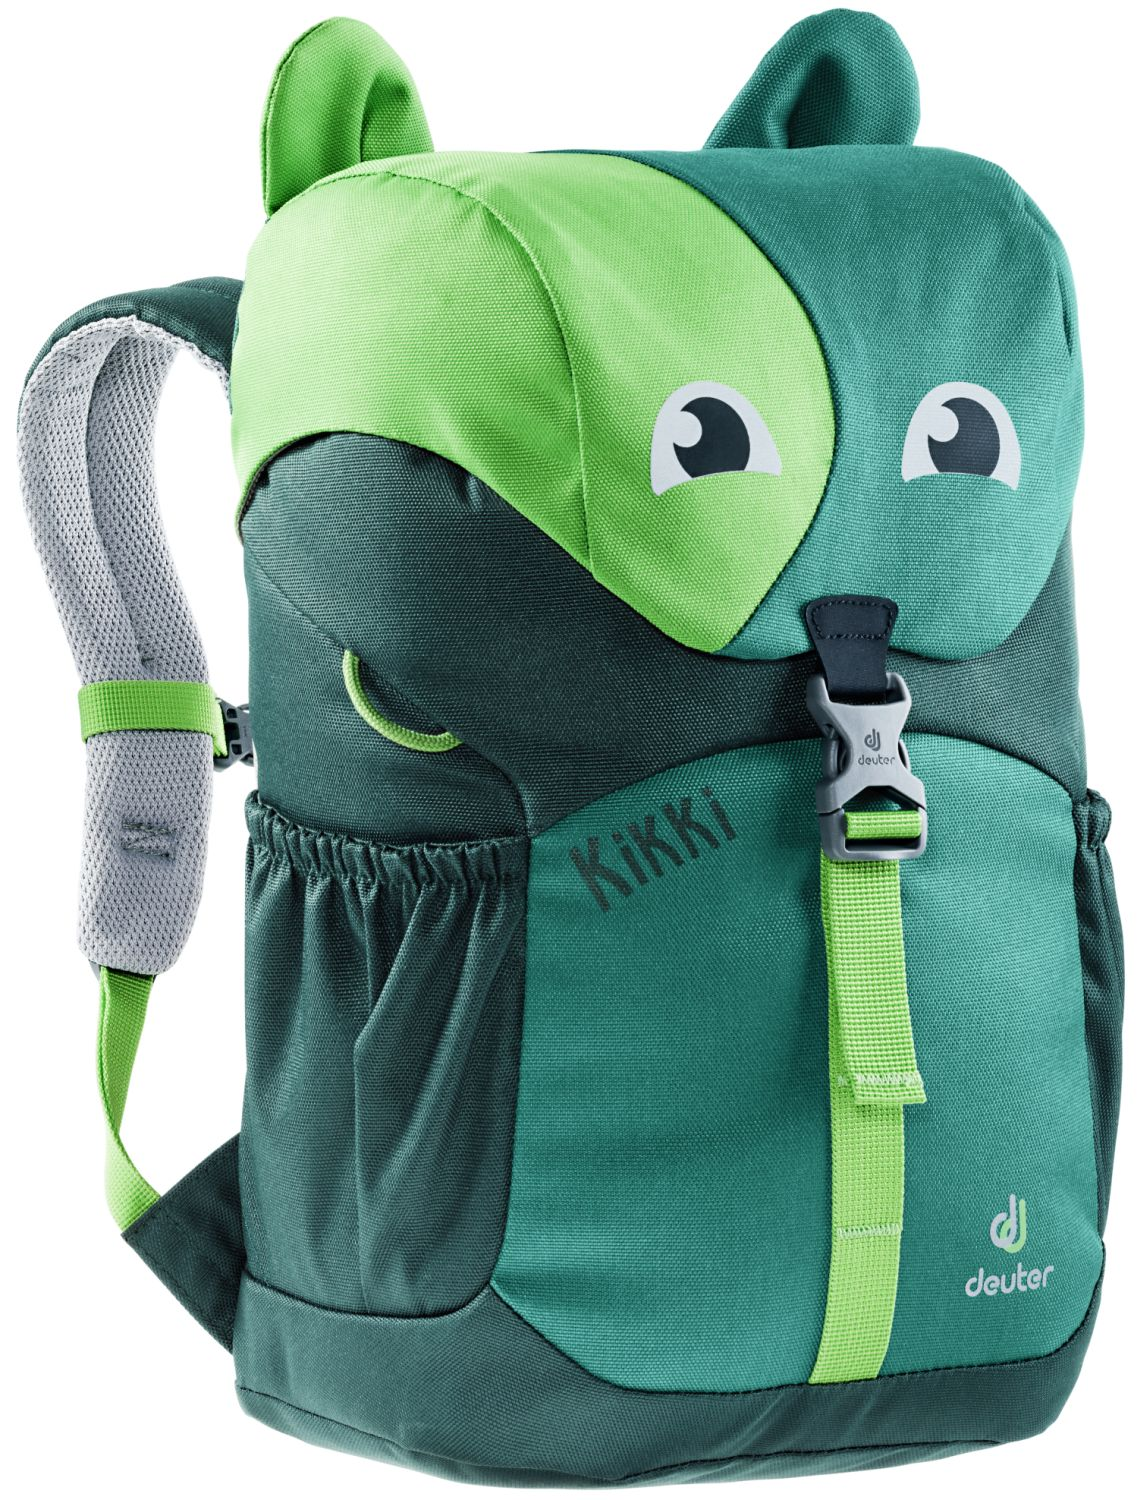 Deuter 'Kikki' Kinderrucksack 300g 8l alpinegreen-forest